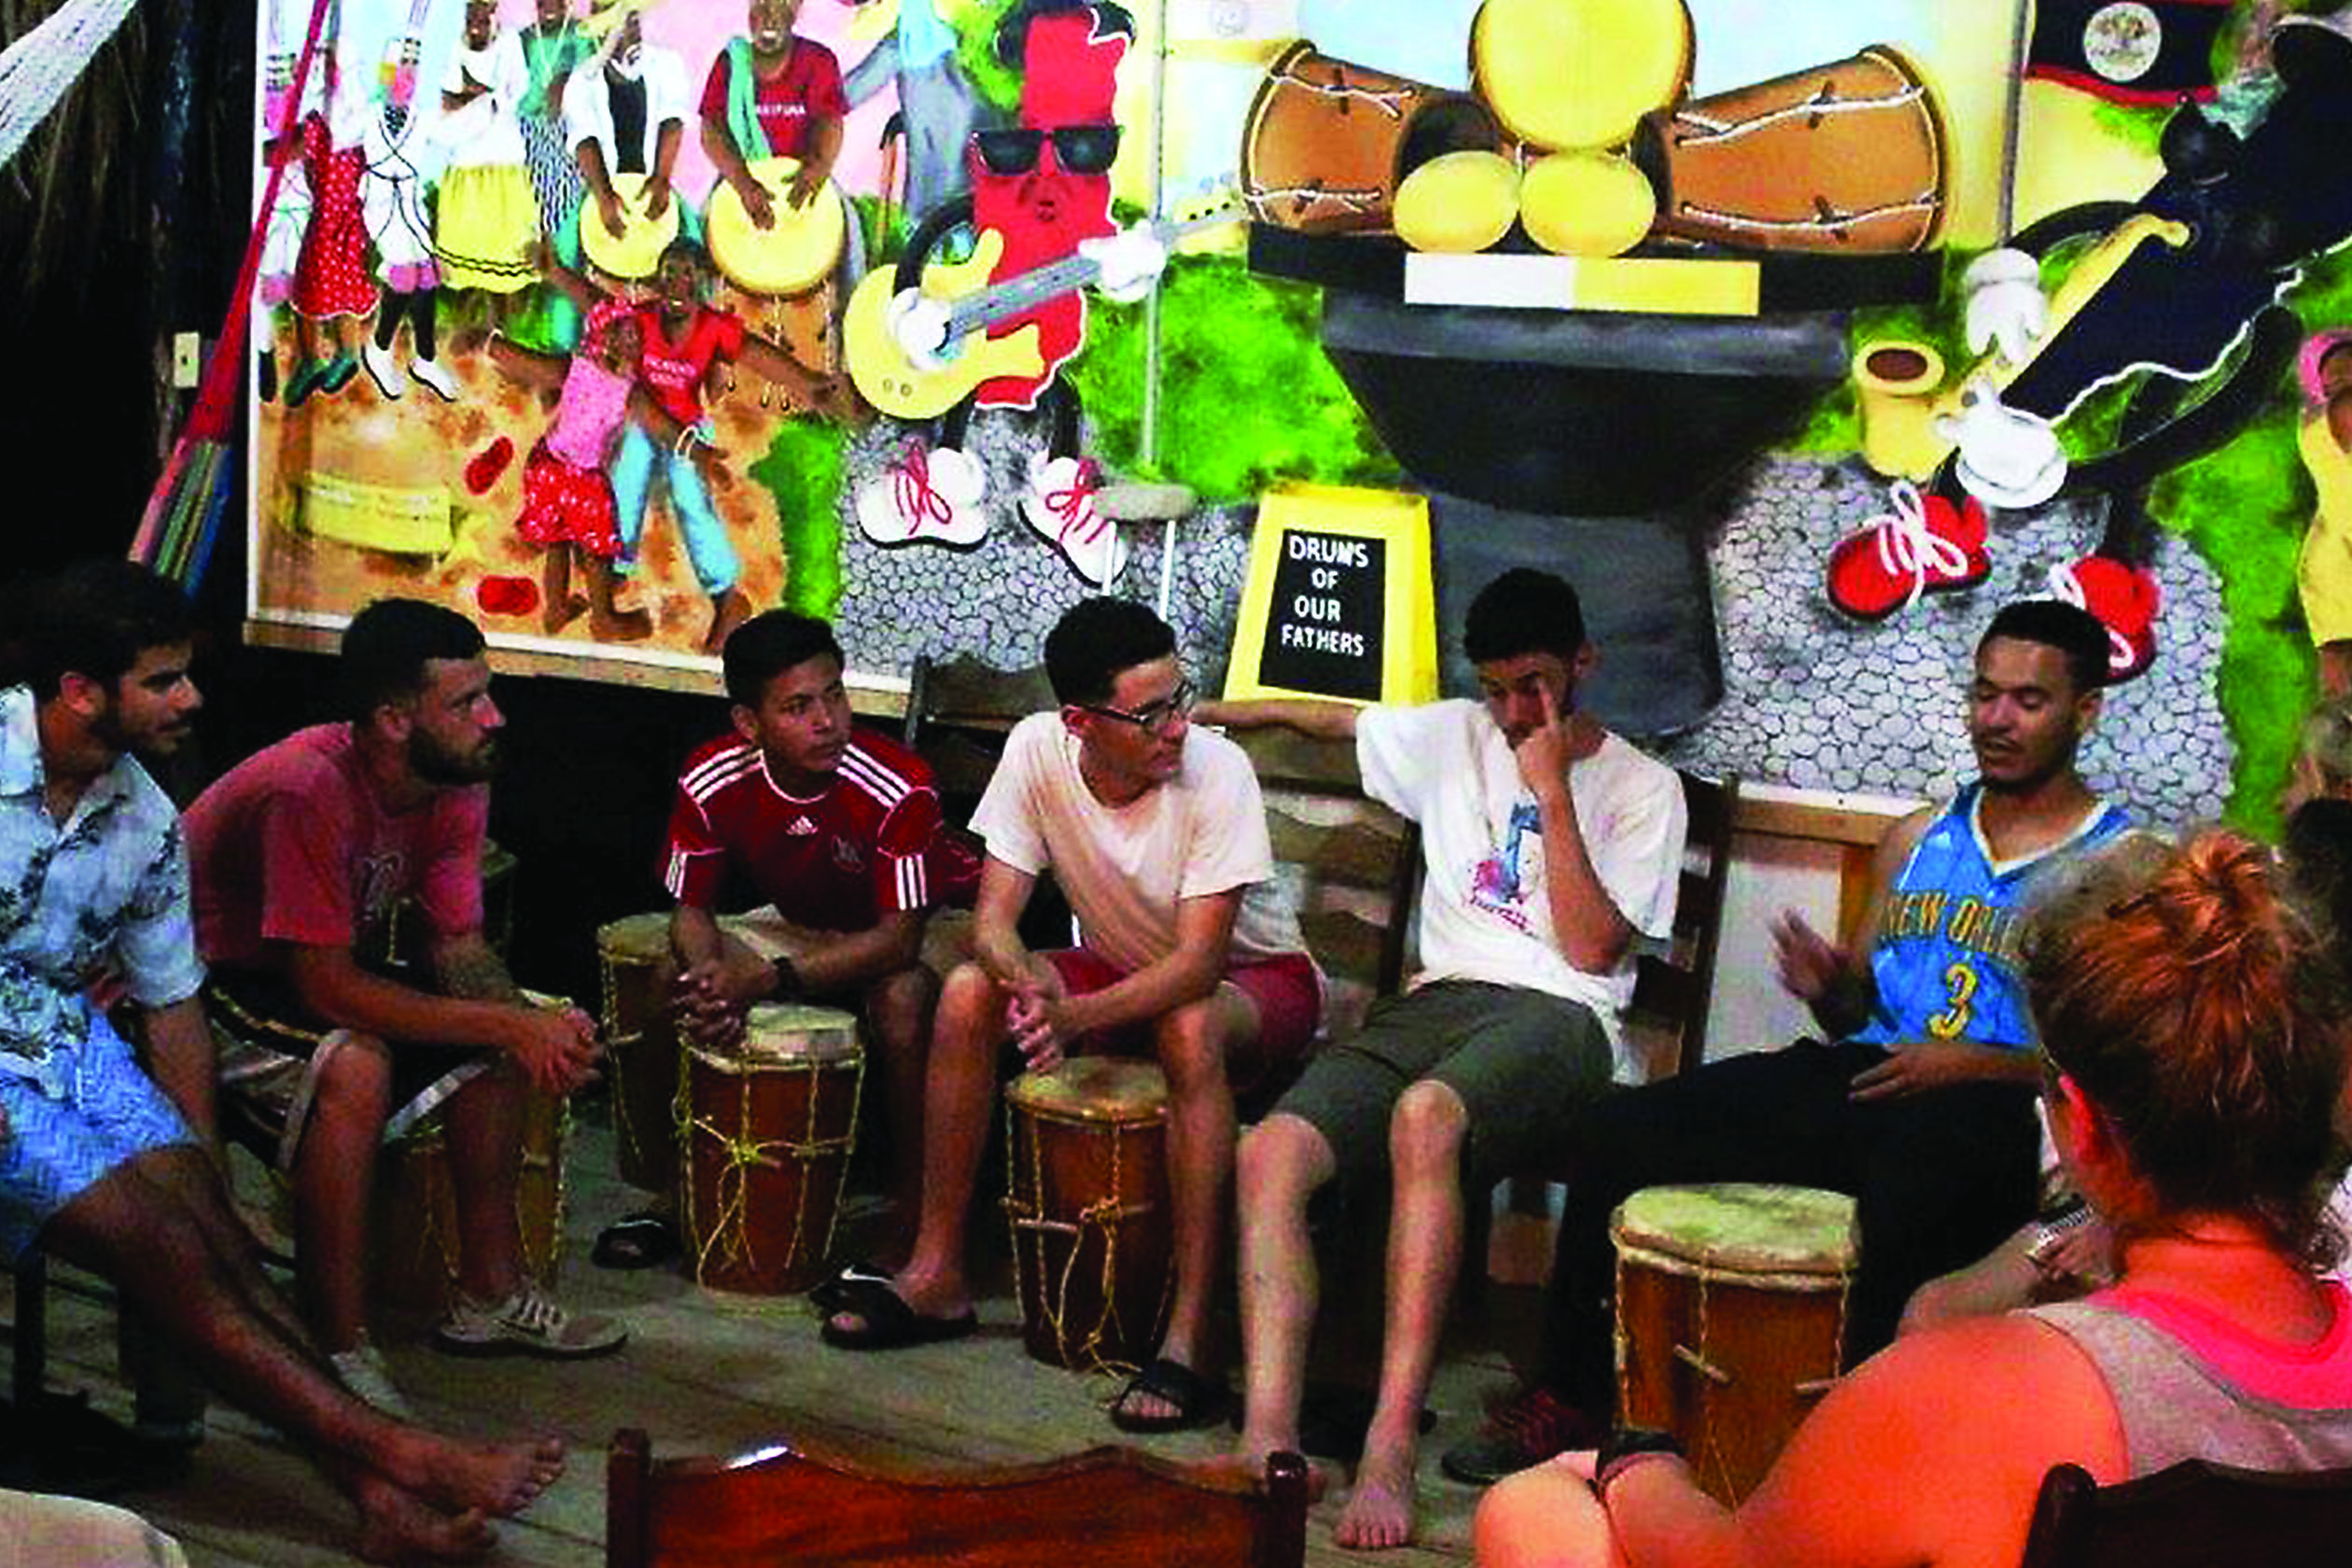 Loyola students and alumni teach drumming at a music program they established in Belize. The Belize trip was established because there were previously no university programs for music in the country. Photo credit: Courtesy of the Rev. Ted Dzak S.J.